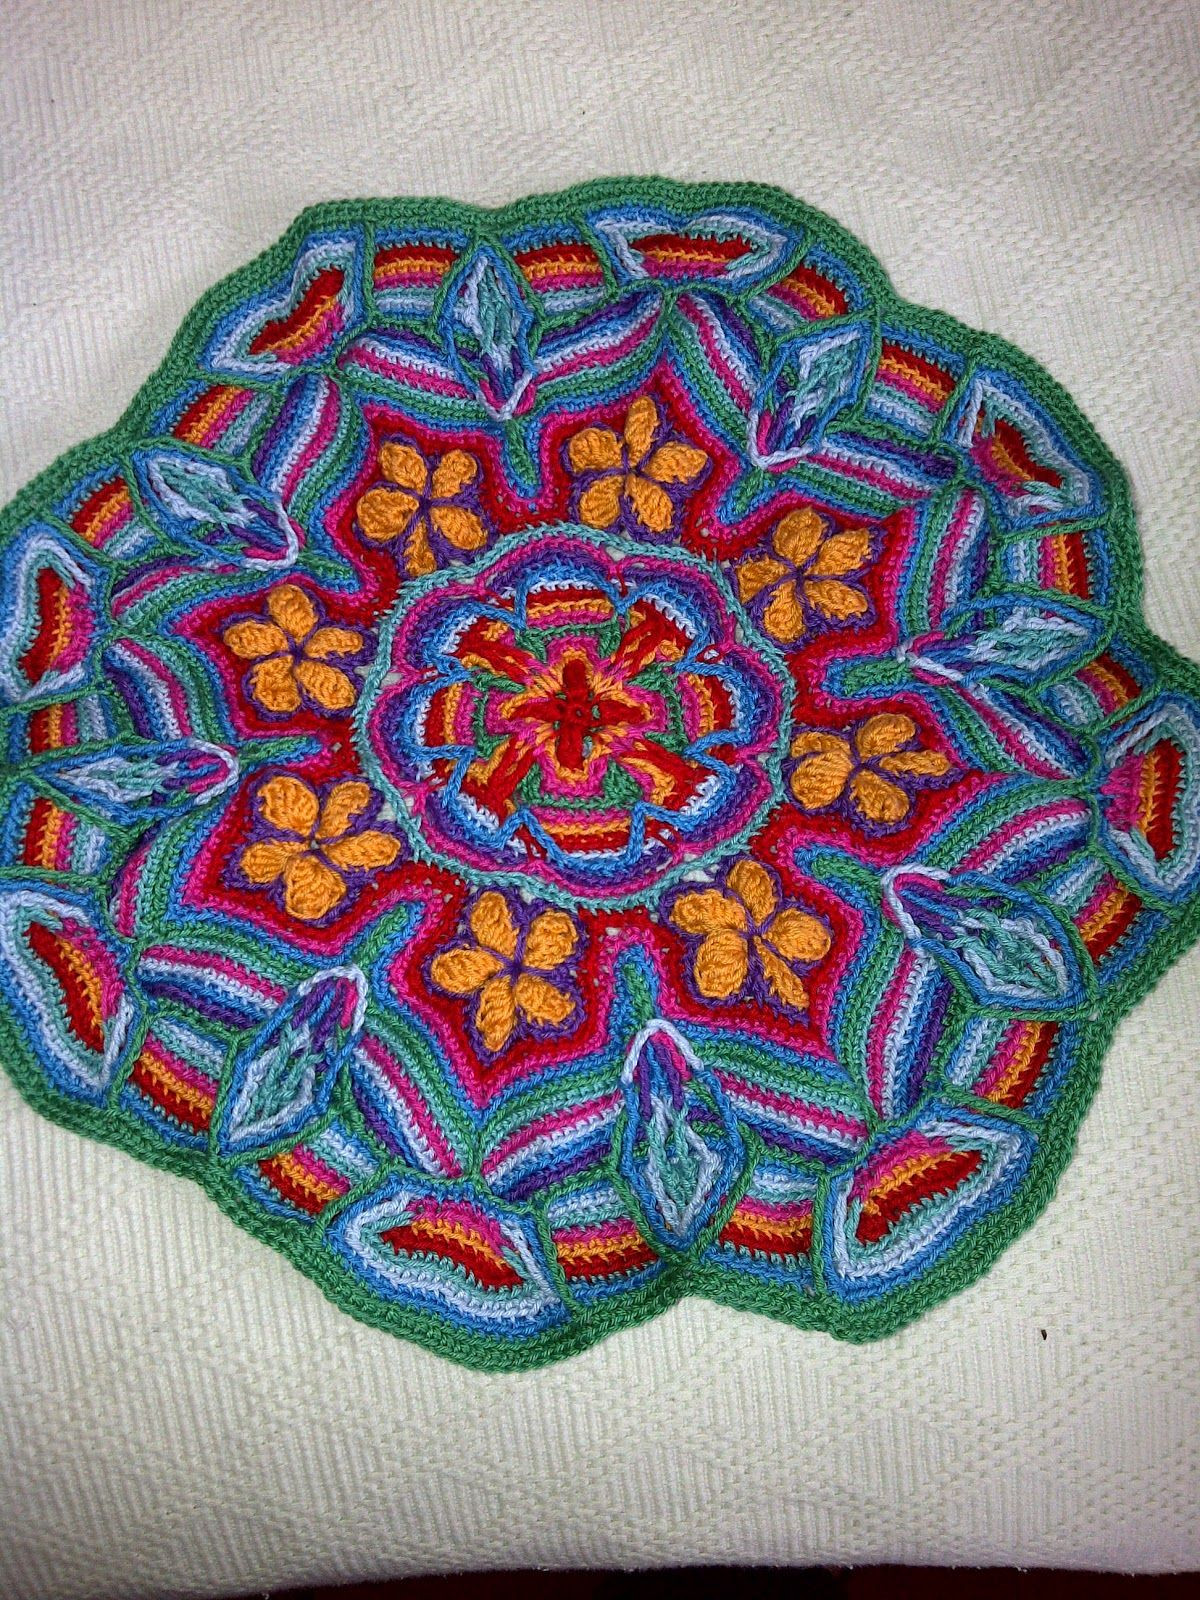 Crochet Mandalas New Overlay Mandala Crochet Has Great Picture Instructions Of Incredible 41 Pics Crochet Mandalas